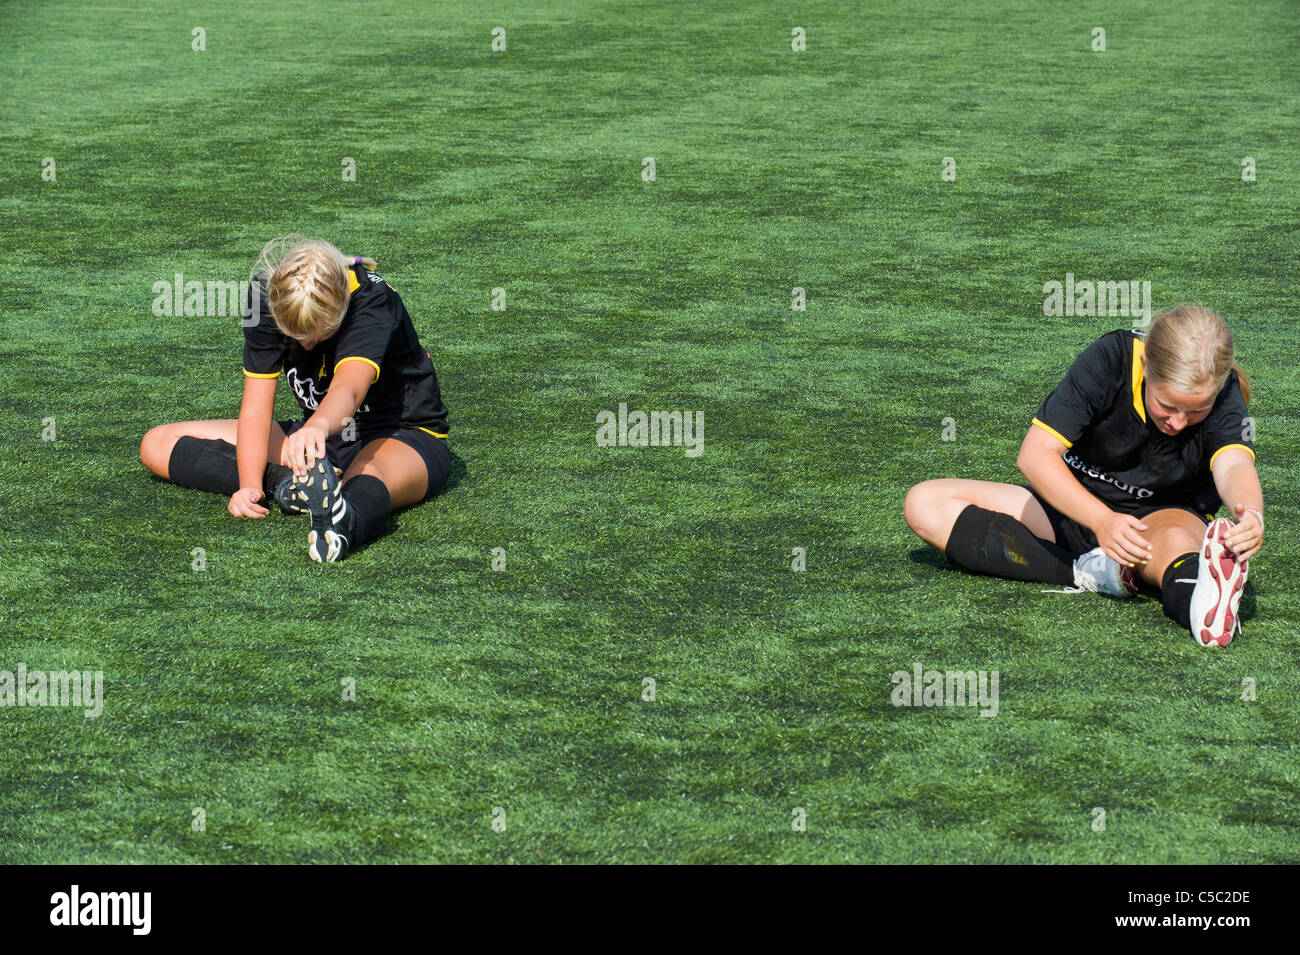 Two girls stretching on the grass at lawn - Stock Image